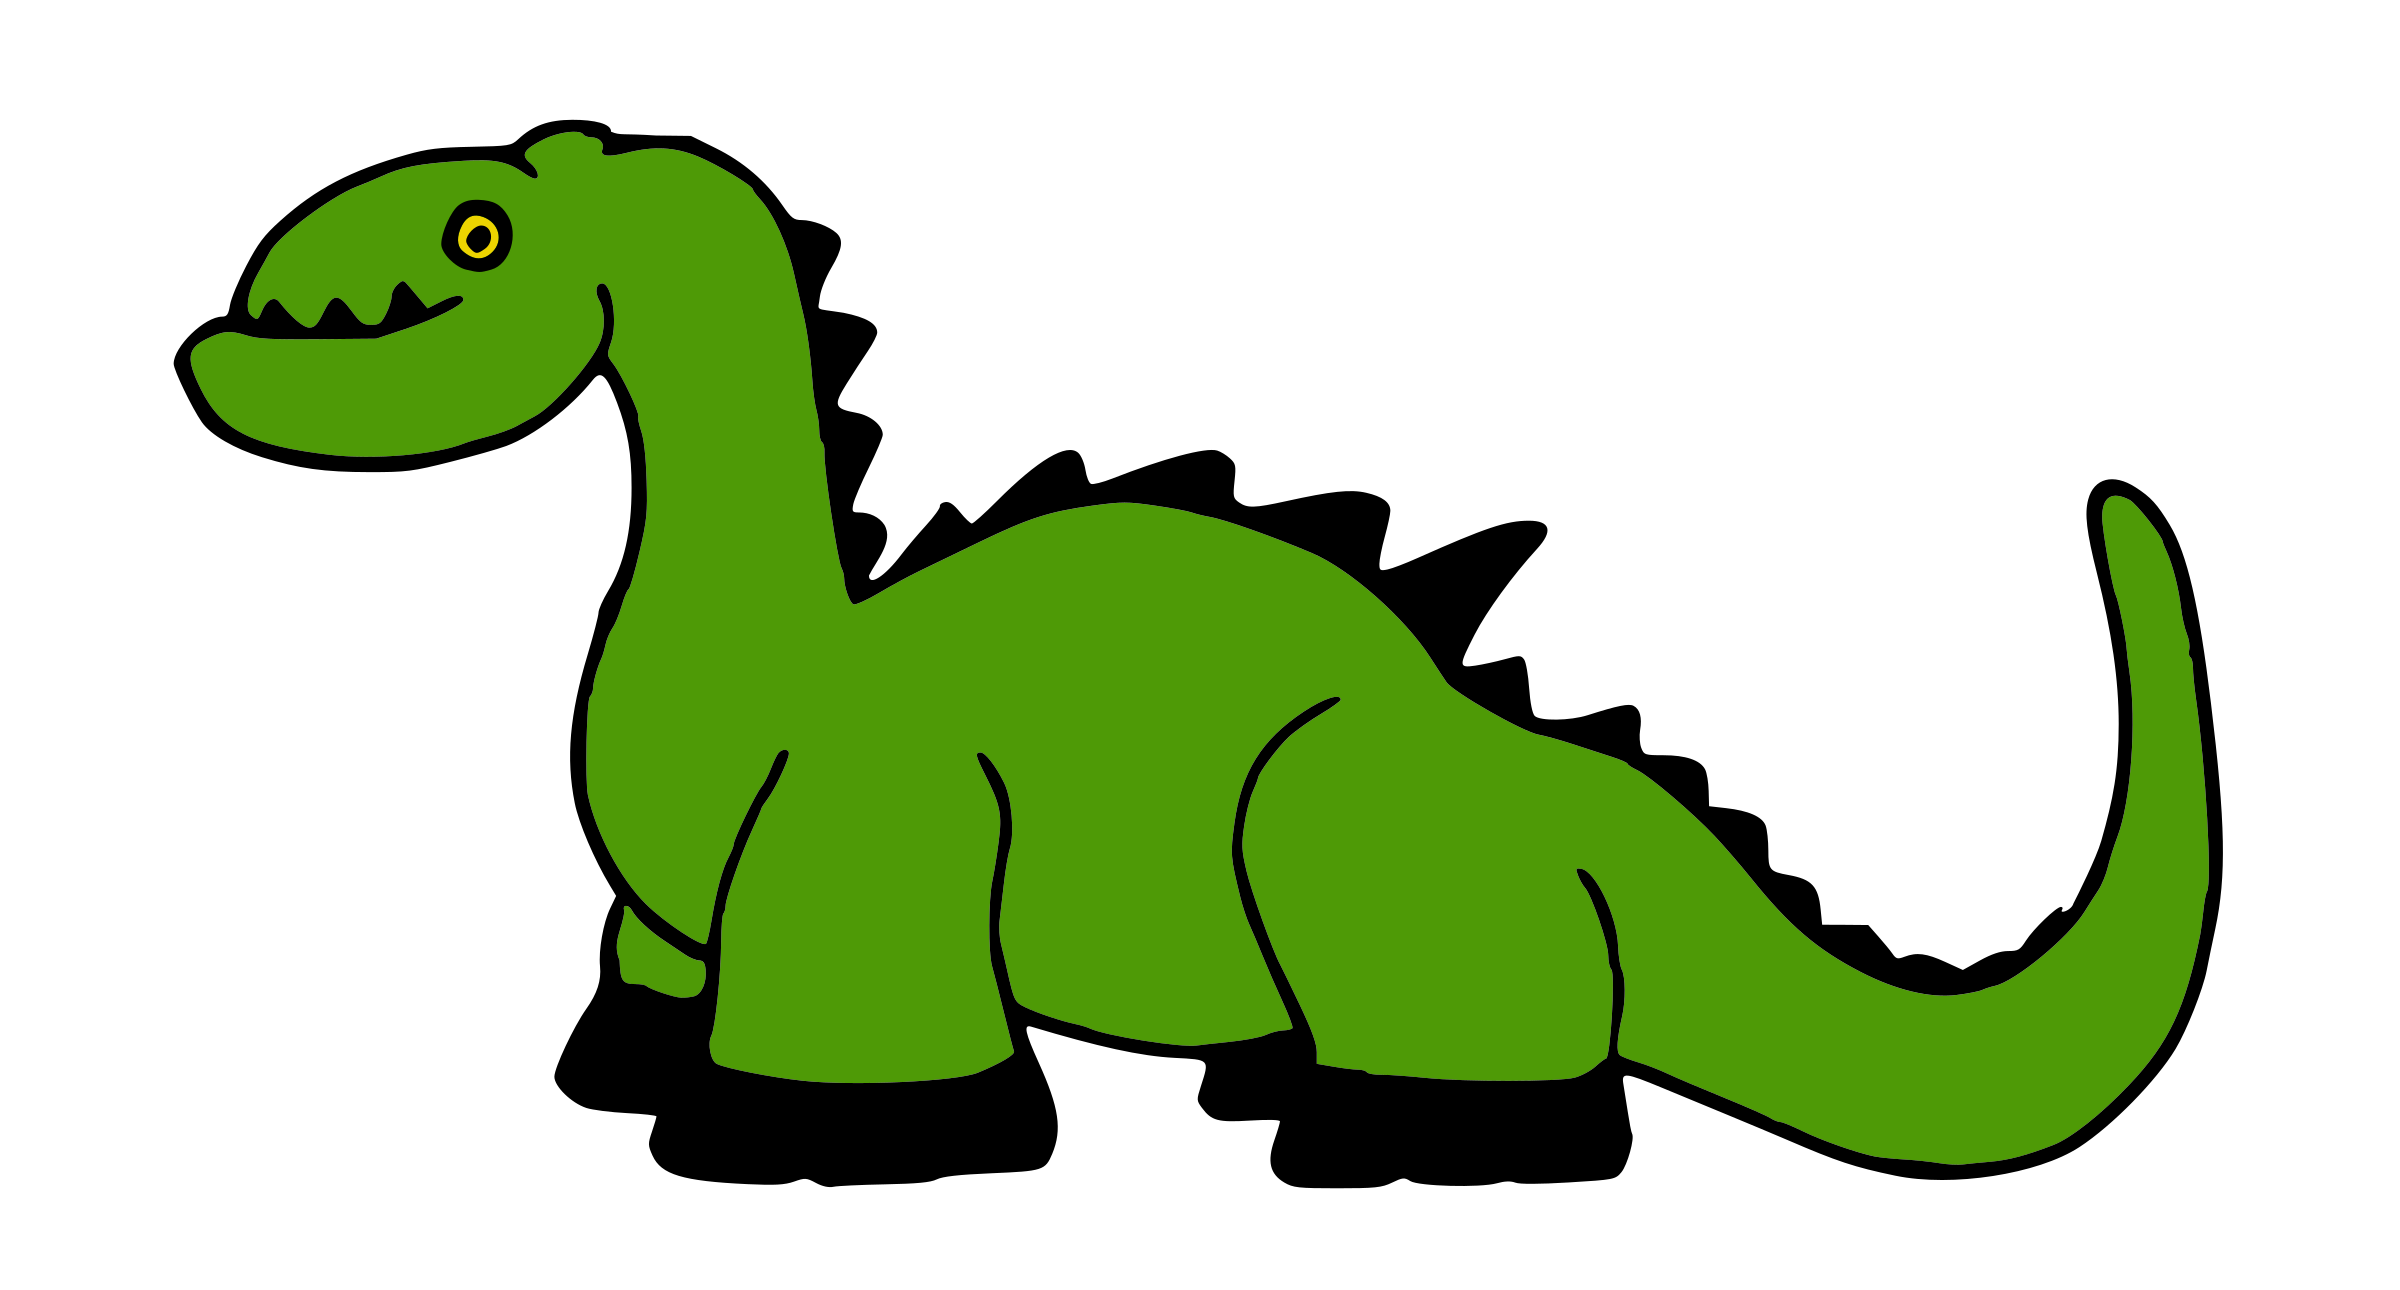 Clipart panda dinosaur. Platypuscove a icons png